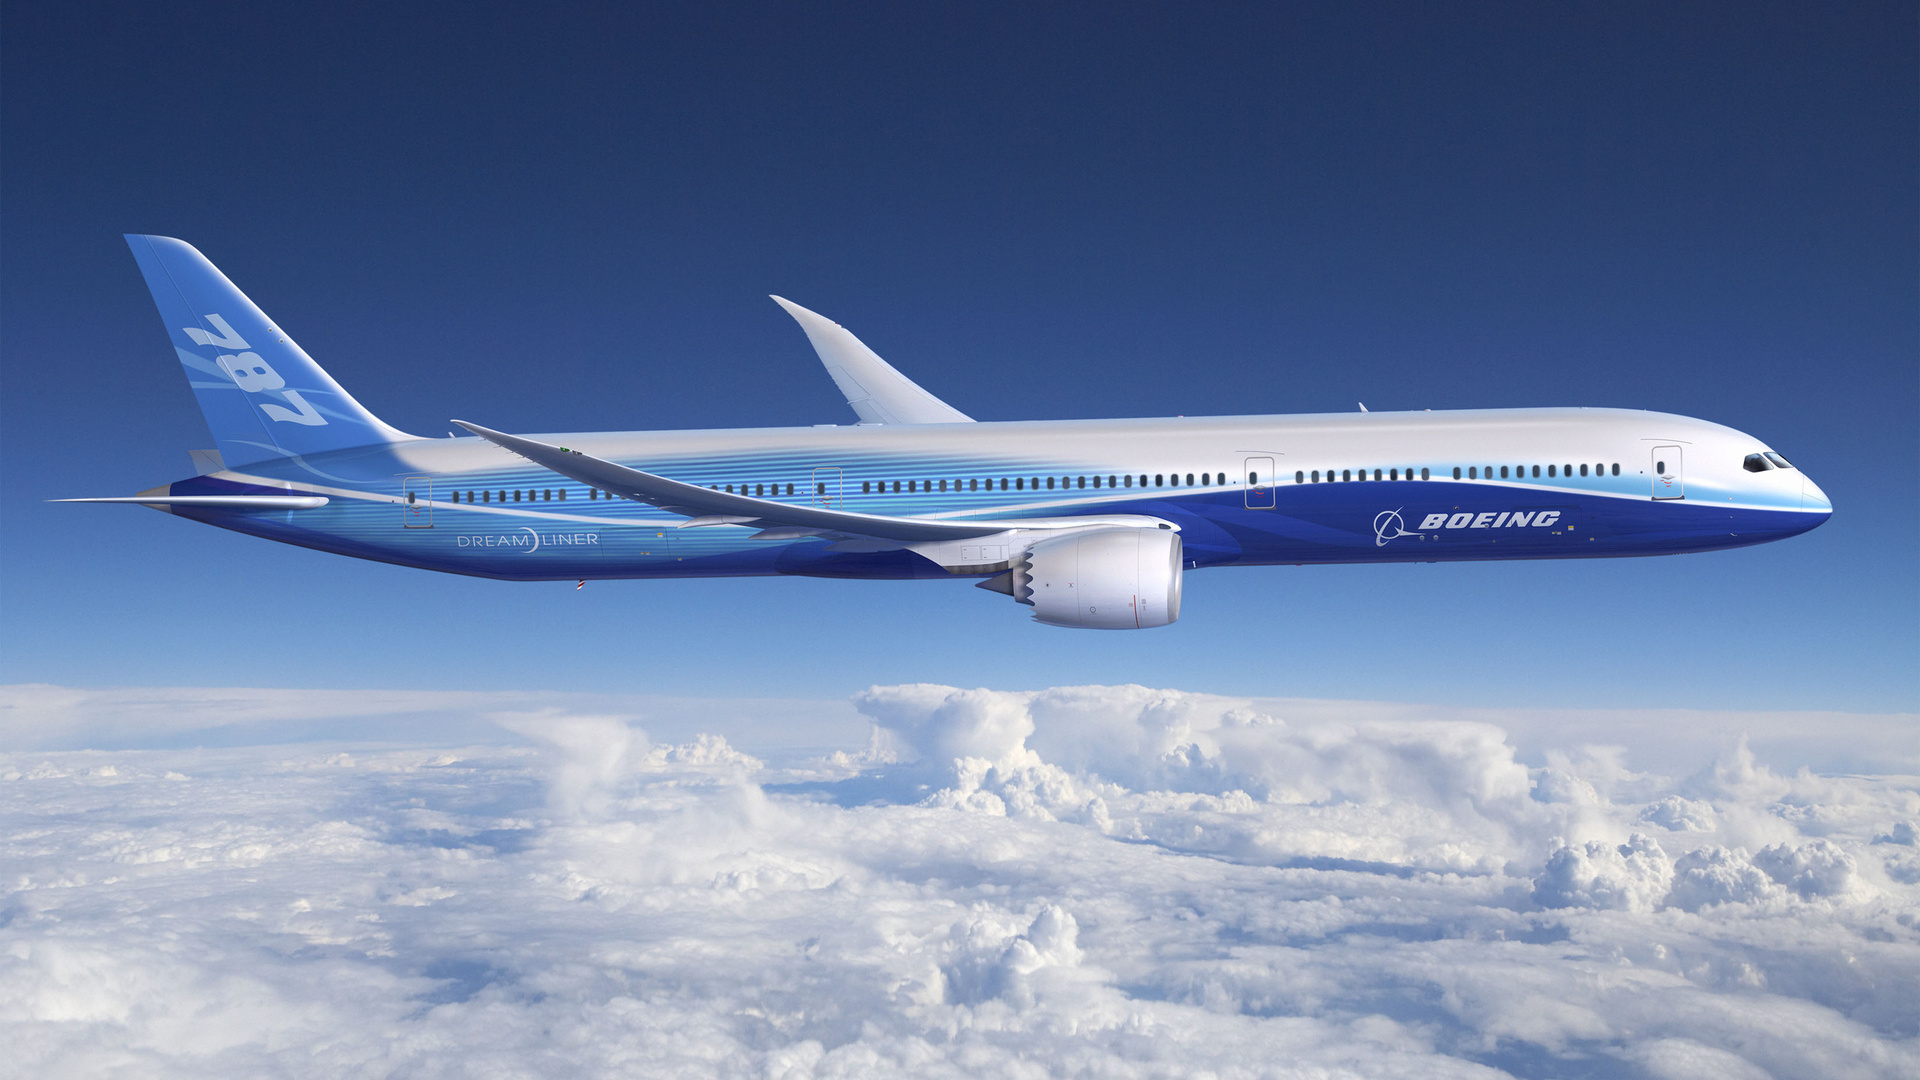 boeing 787 The boeing 787-8 is a mid-size, dual aisle, twin engine jet manufactured by boeing, the american aerospace company the aircraft is 20% more fuel efficient than similar sized commercial jets it is designed to replace, and to date, is boeing's most fuel efficient aircraft.